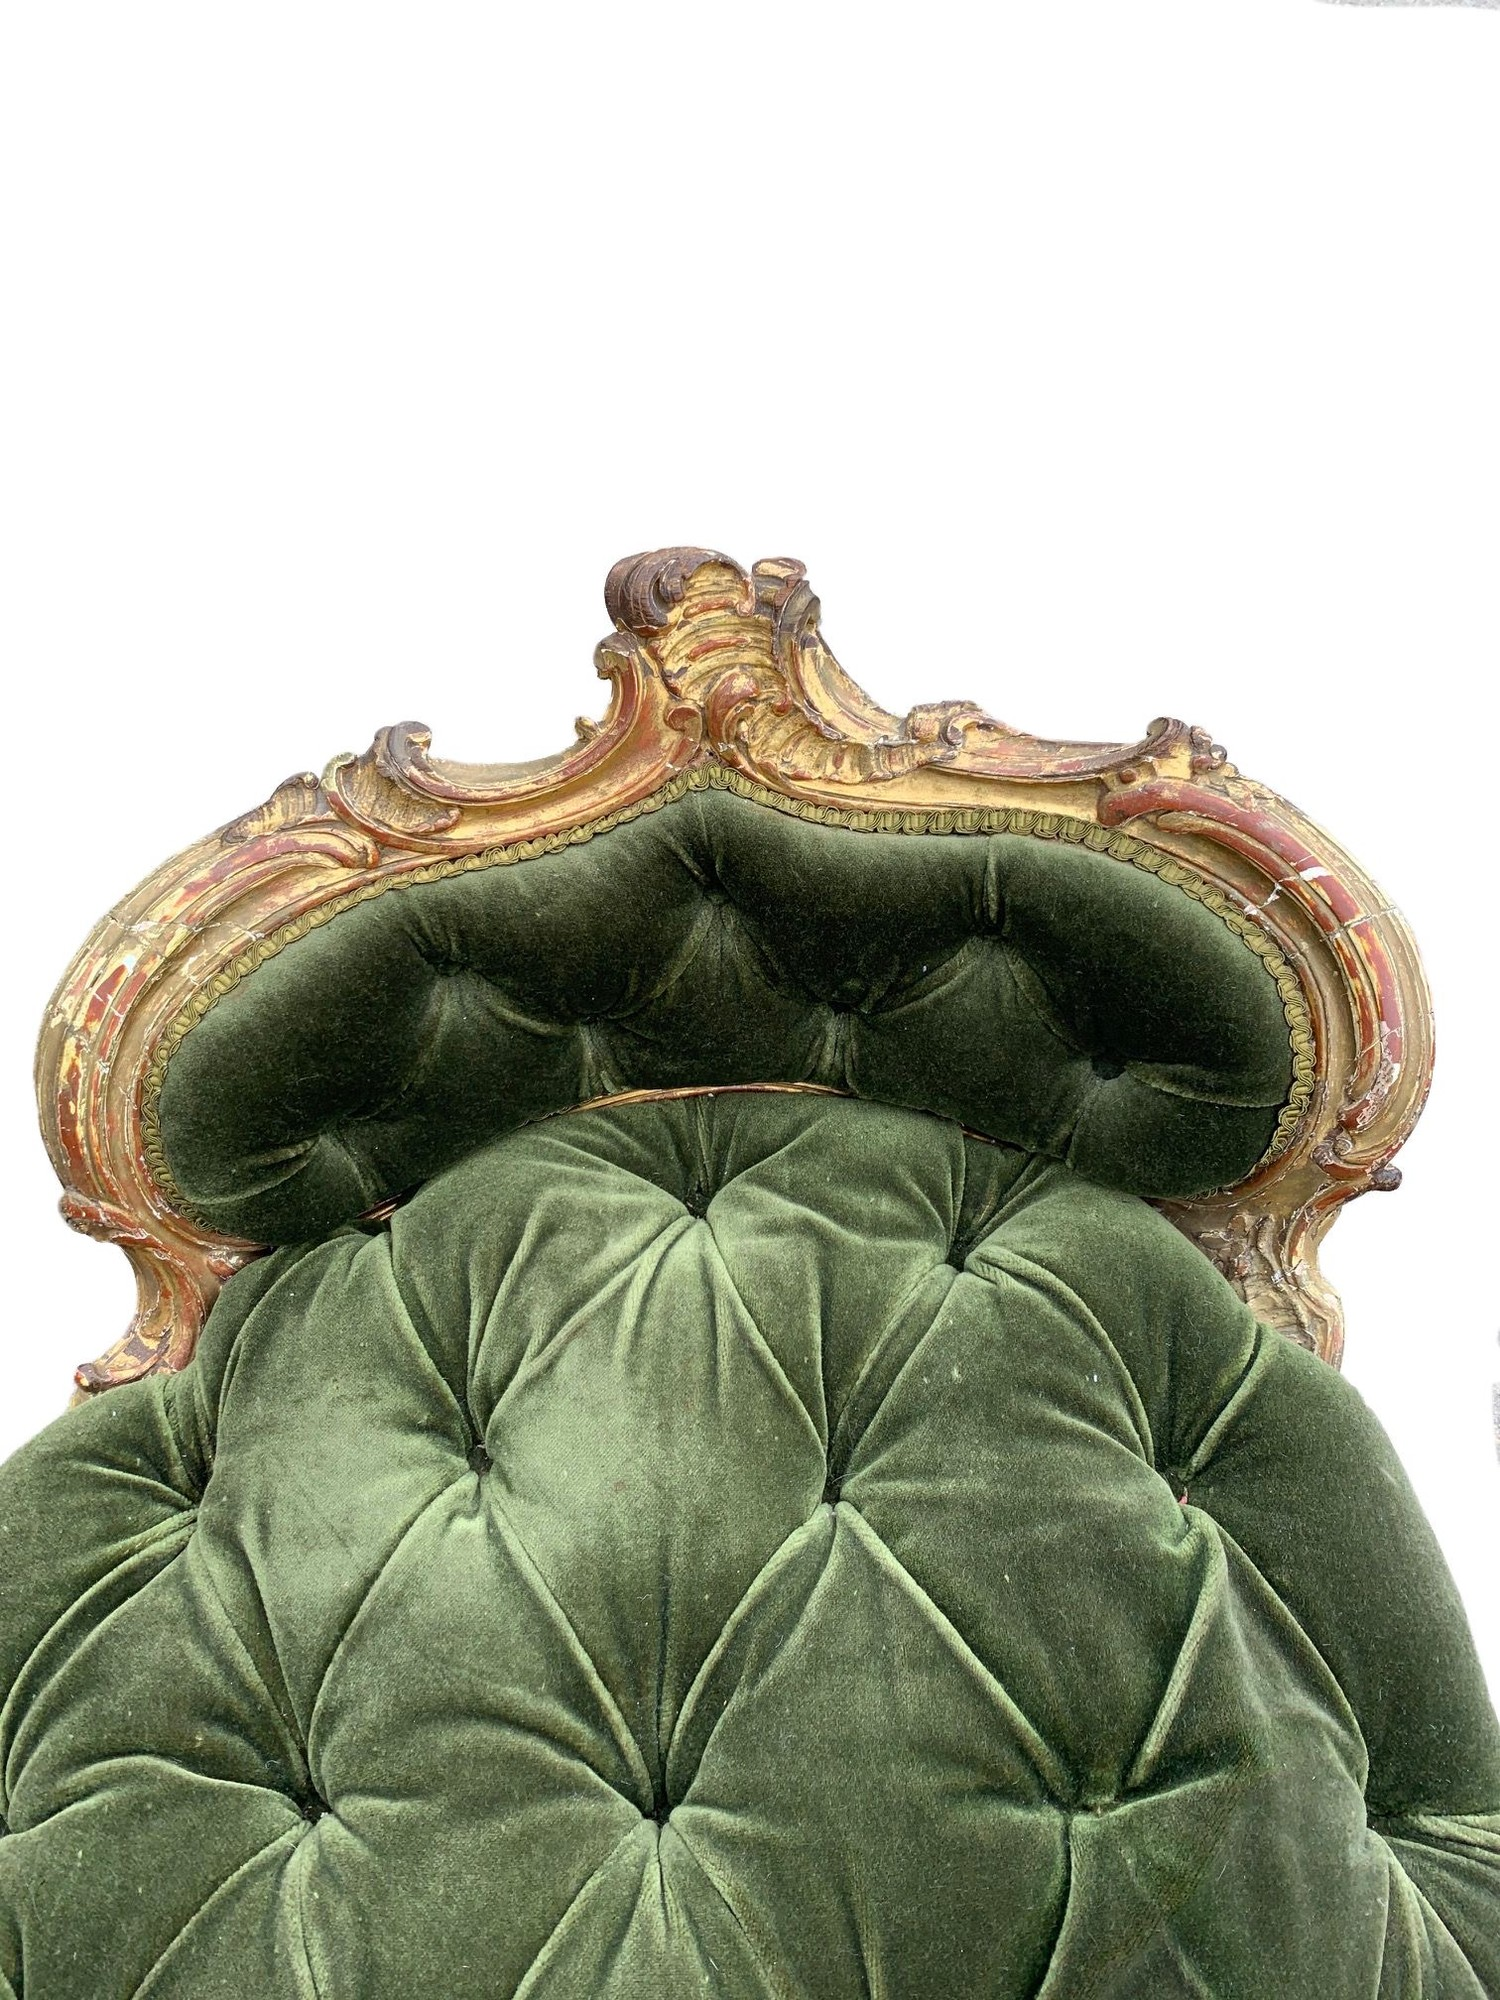 AN 18TH CENTURY FRENCH LOUIS XV ROCOCO CARVED GILTWOOD DUCHESSE DAYBED With button upholstery, frame - Image 4 of 8